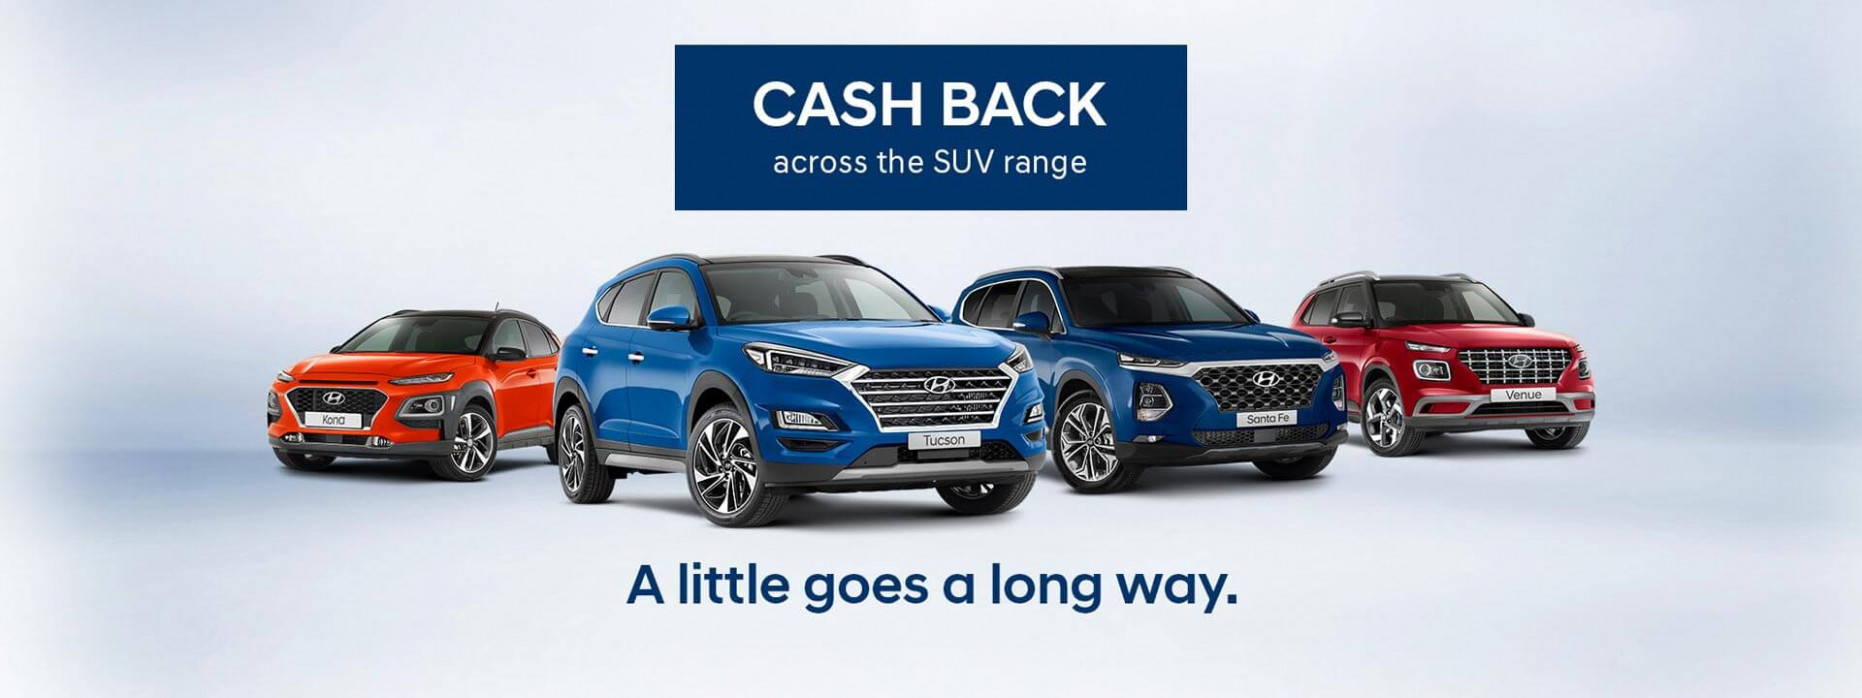 Hyundai Special Offers | Doncaster, VIC | Doncaster Hyundai - hyundai july 2020 offers